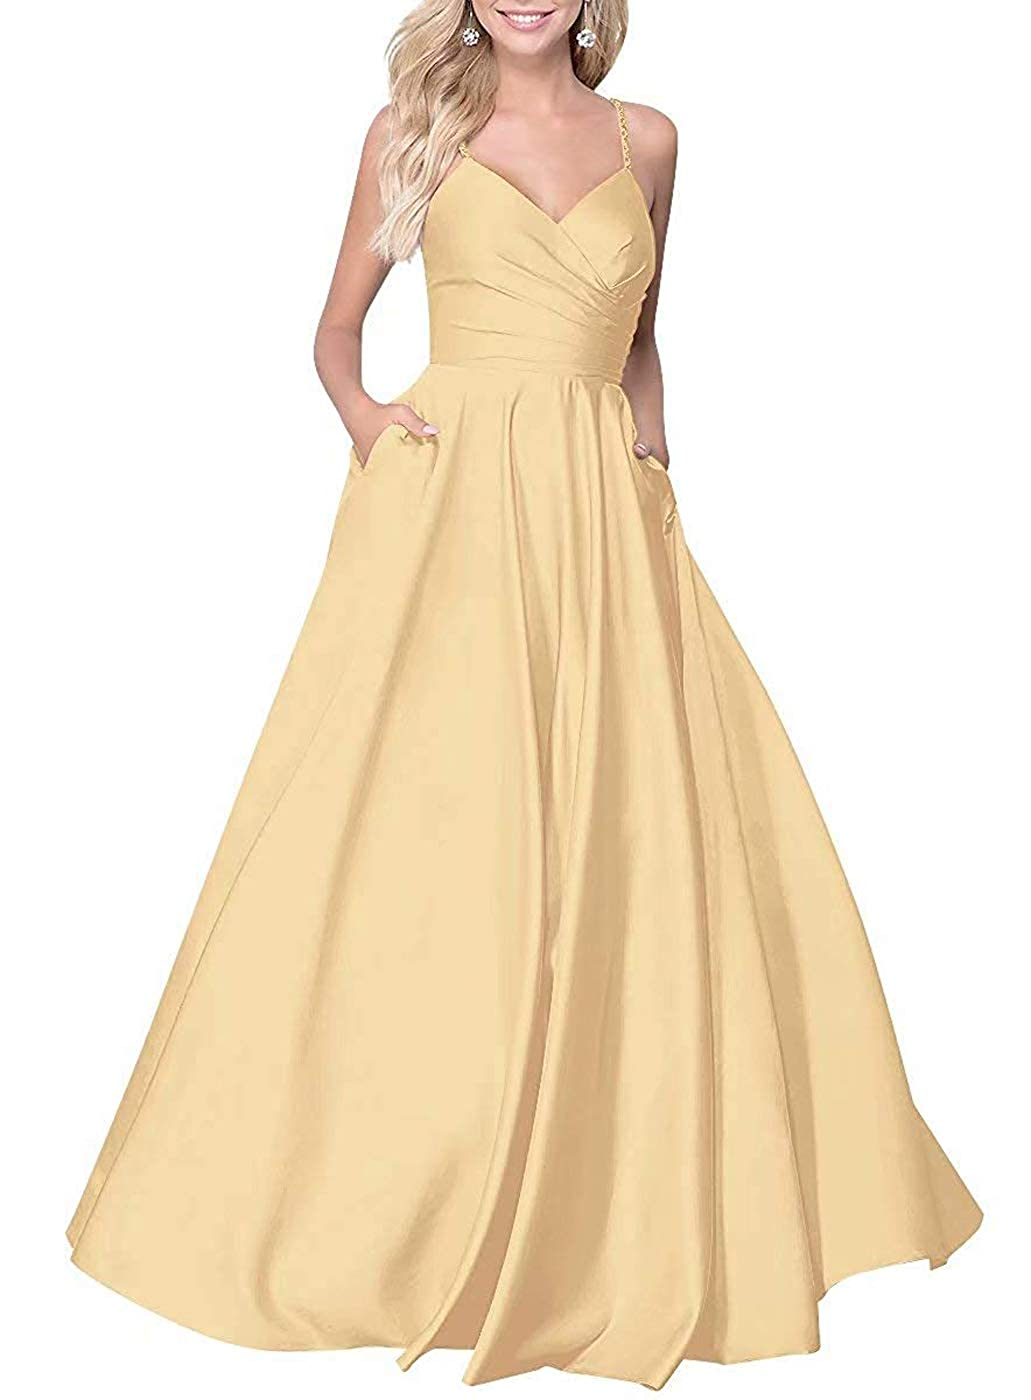 gold RTTUTED Satin ALine Long Prom Dresses for Women V Neck Formal Evening Gown with Pockets